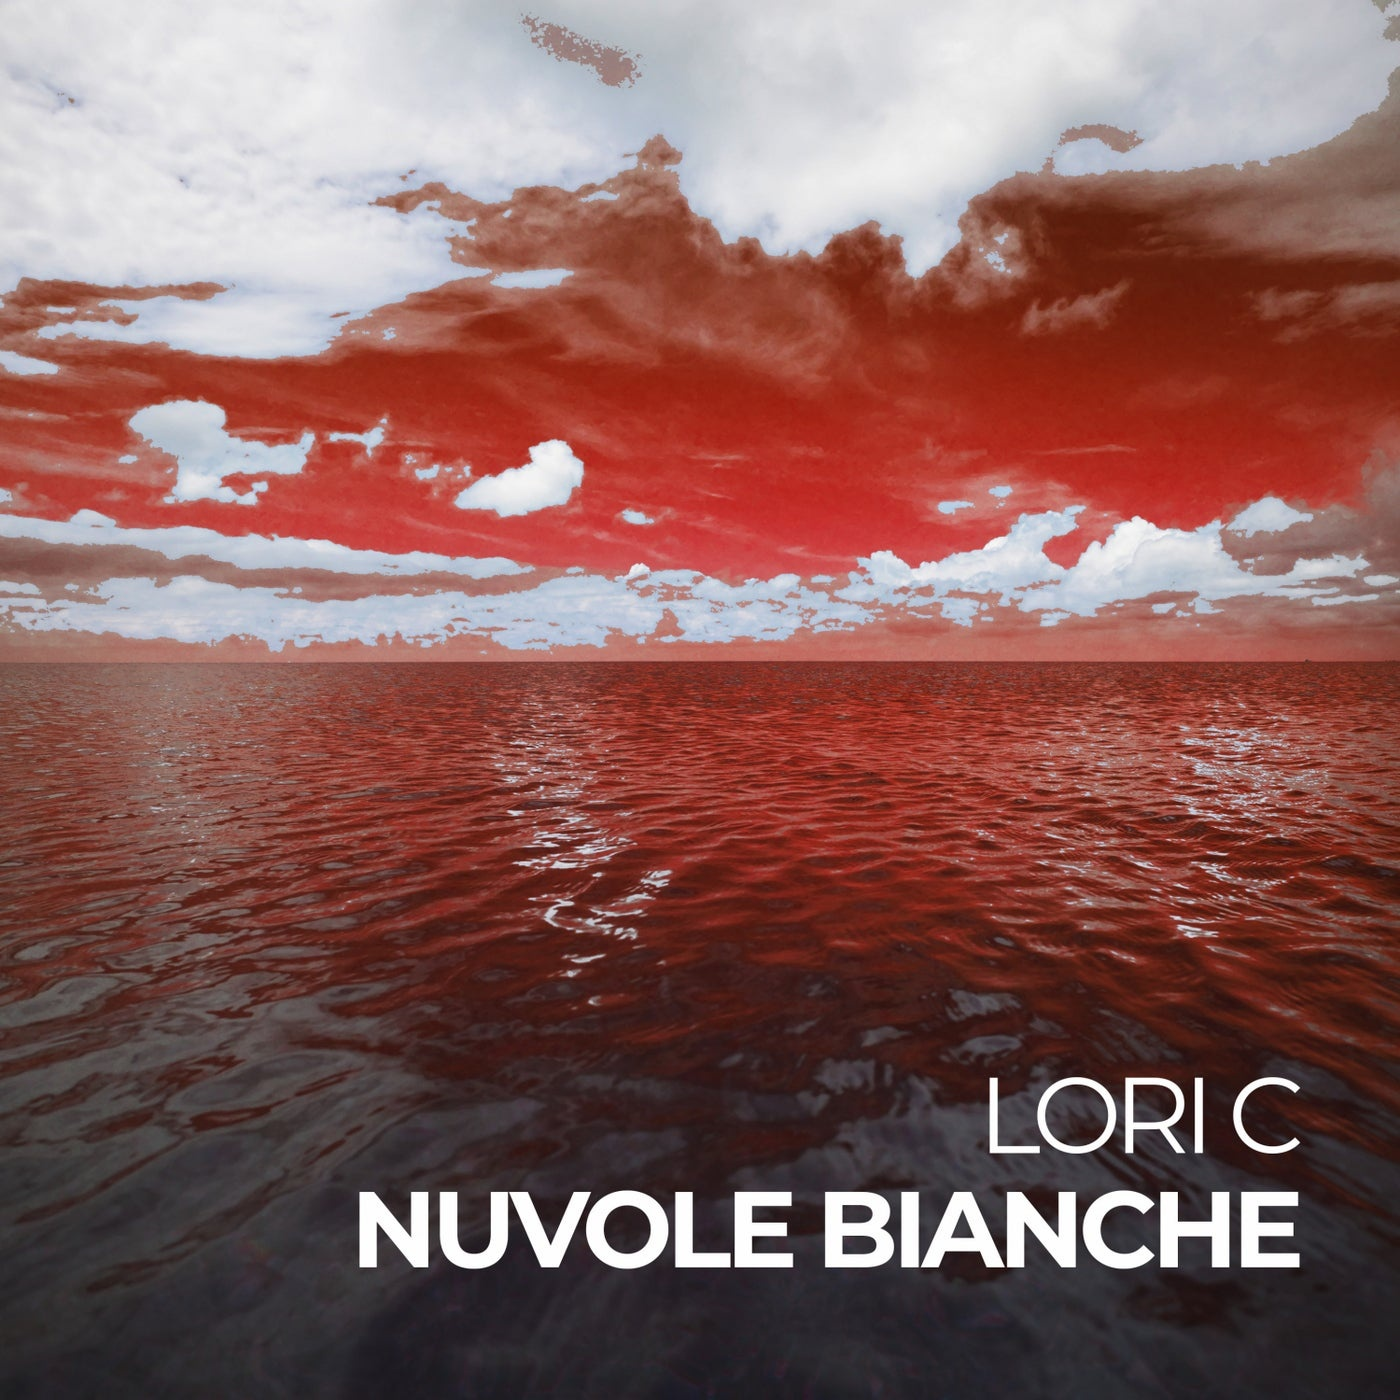 Cover - Lori C - Nuvole Bianche (Extended Mix)